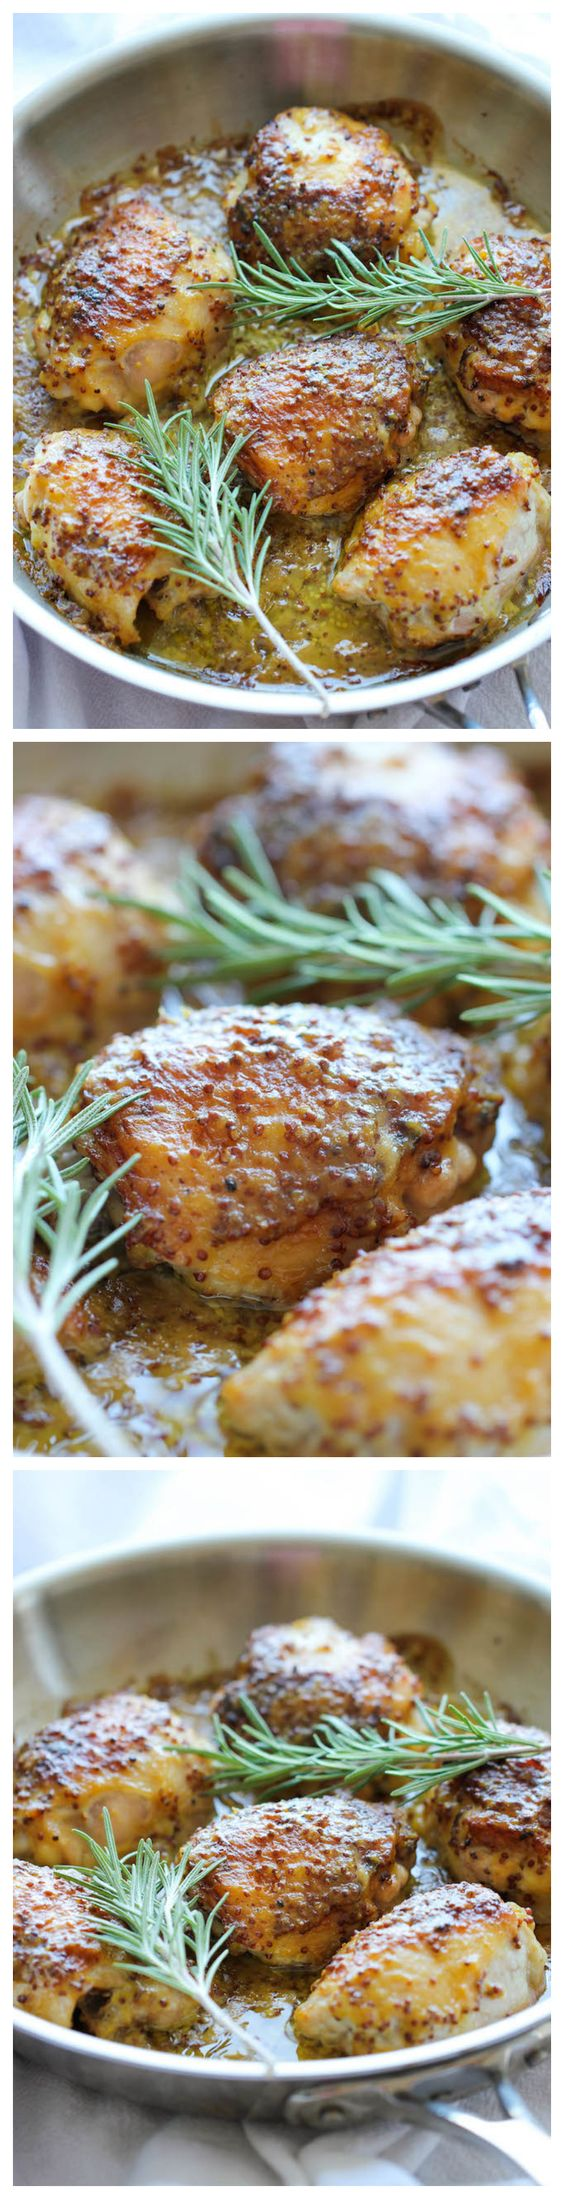 Baked Honey Mustard Chicken - Loved this! I used skinless chicken thighs and it turned out great.